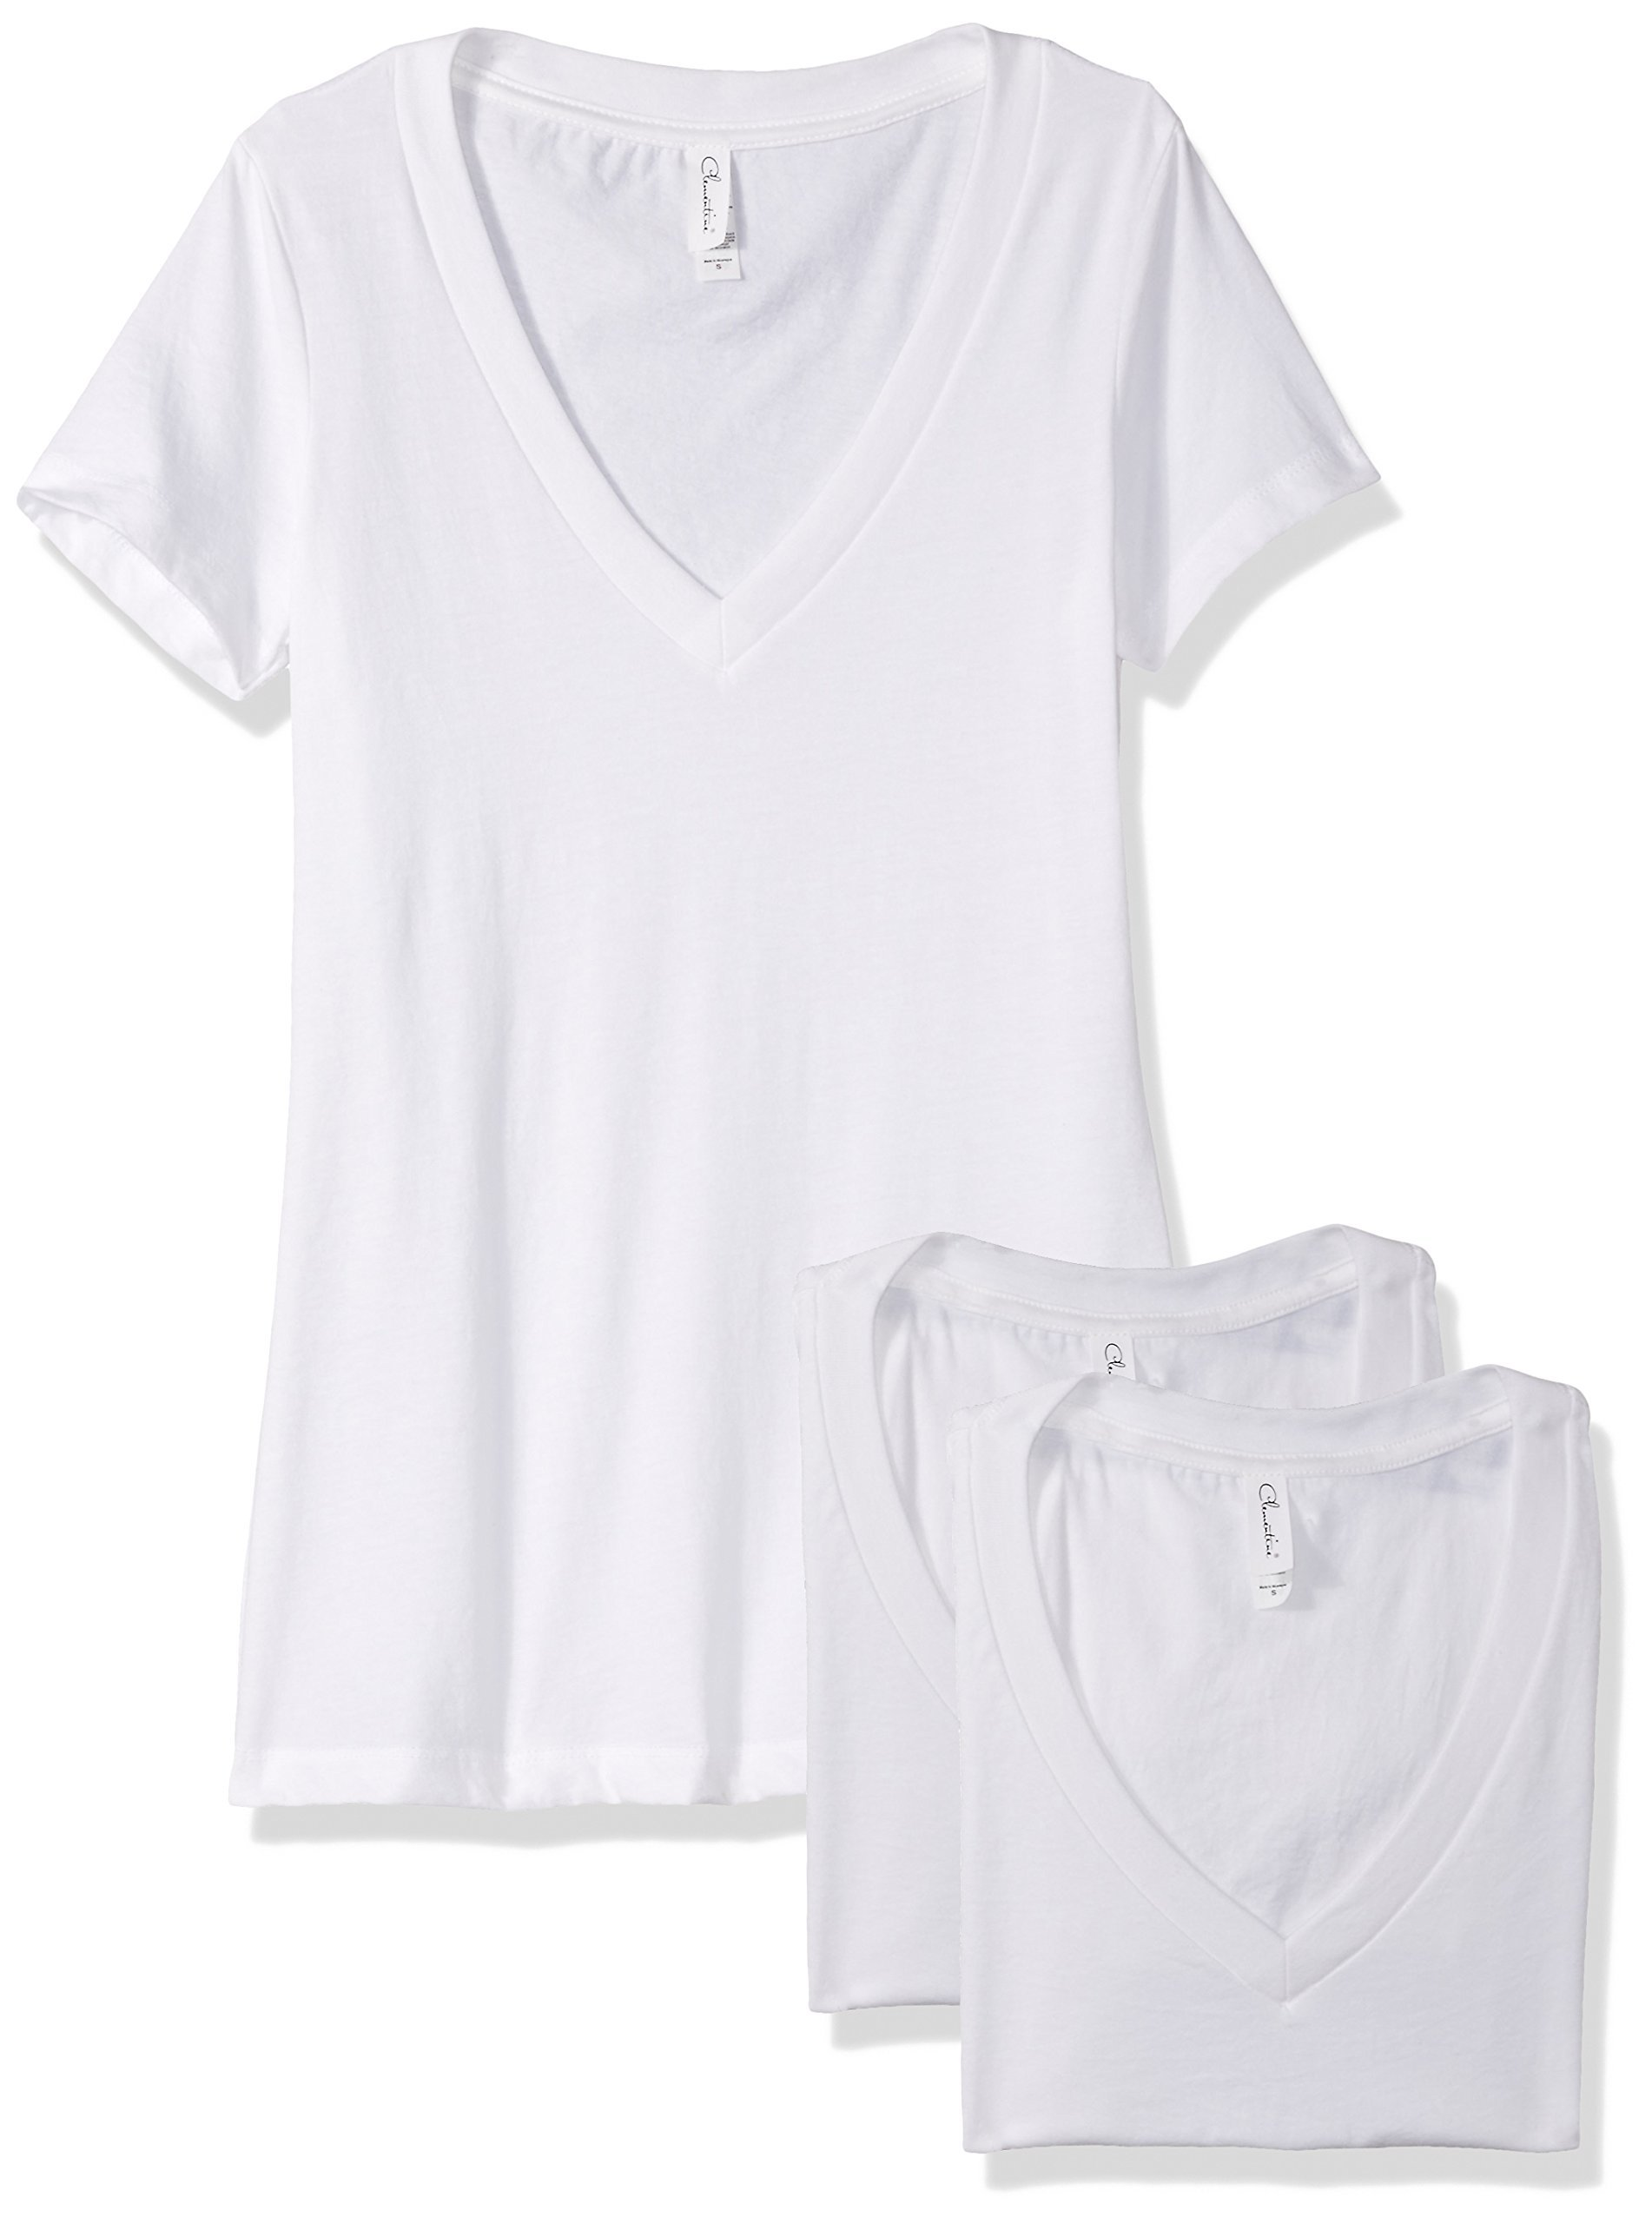 Clementine Apparel Women's Petite Plus Deep V Neck Tee (Pack of 3), White/White/White, XL